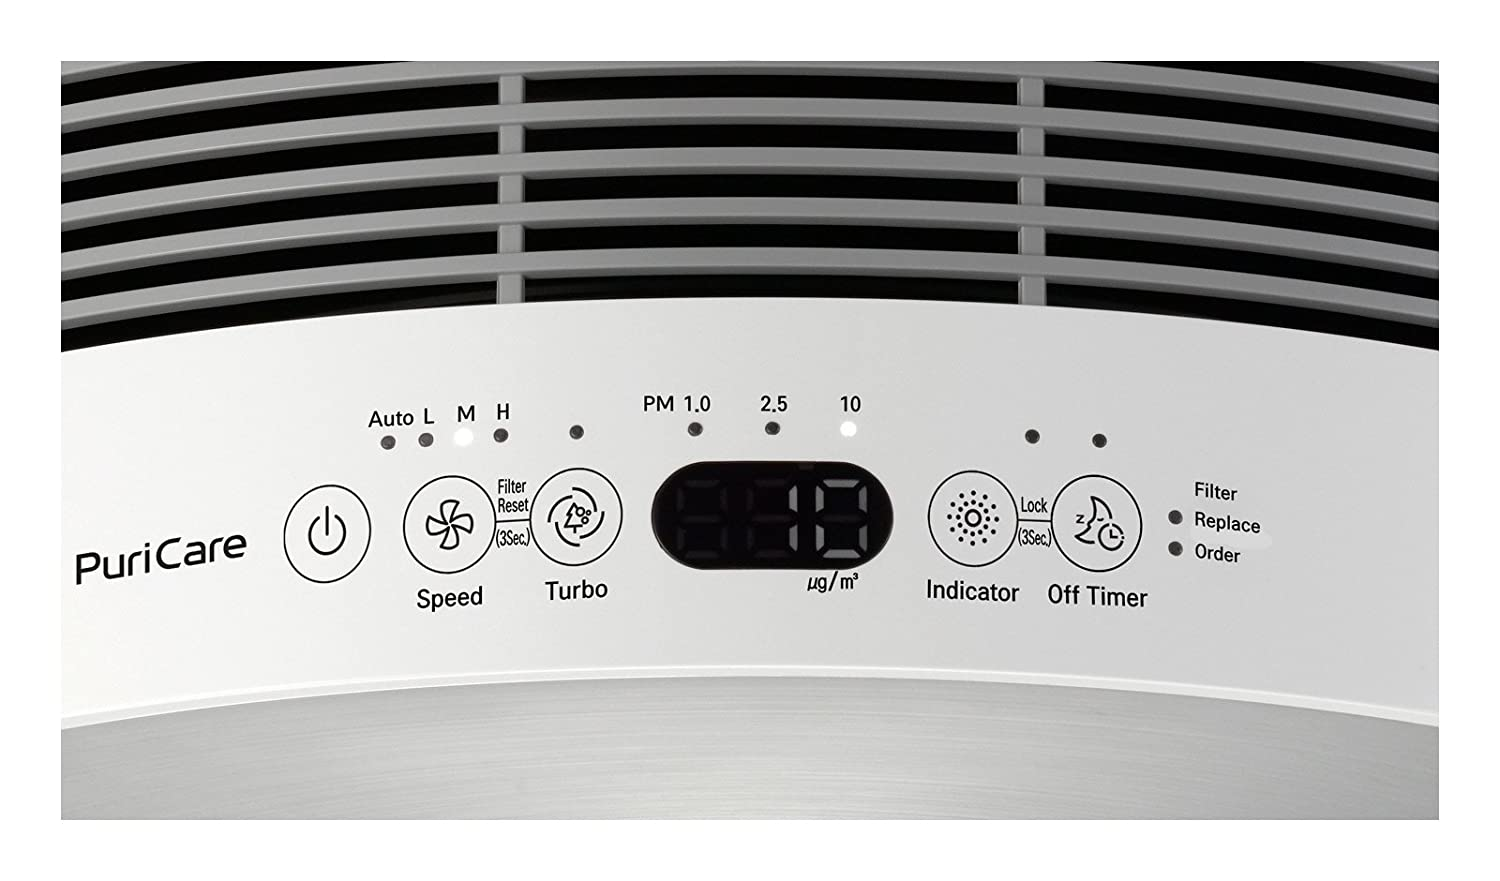 LG AS401VSA0 Sensor Lodecibel PuriCare 3-Stage Filter Purifier with Smart Air Quality Sensor and LoDecibel Operation, Brushed Silver